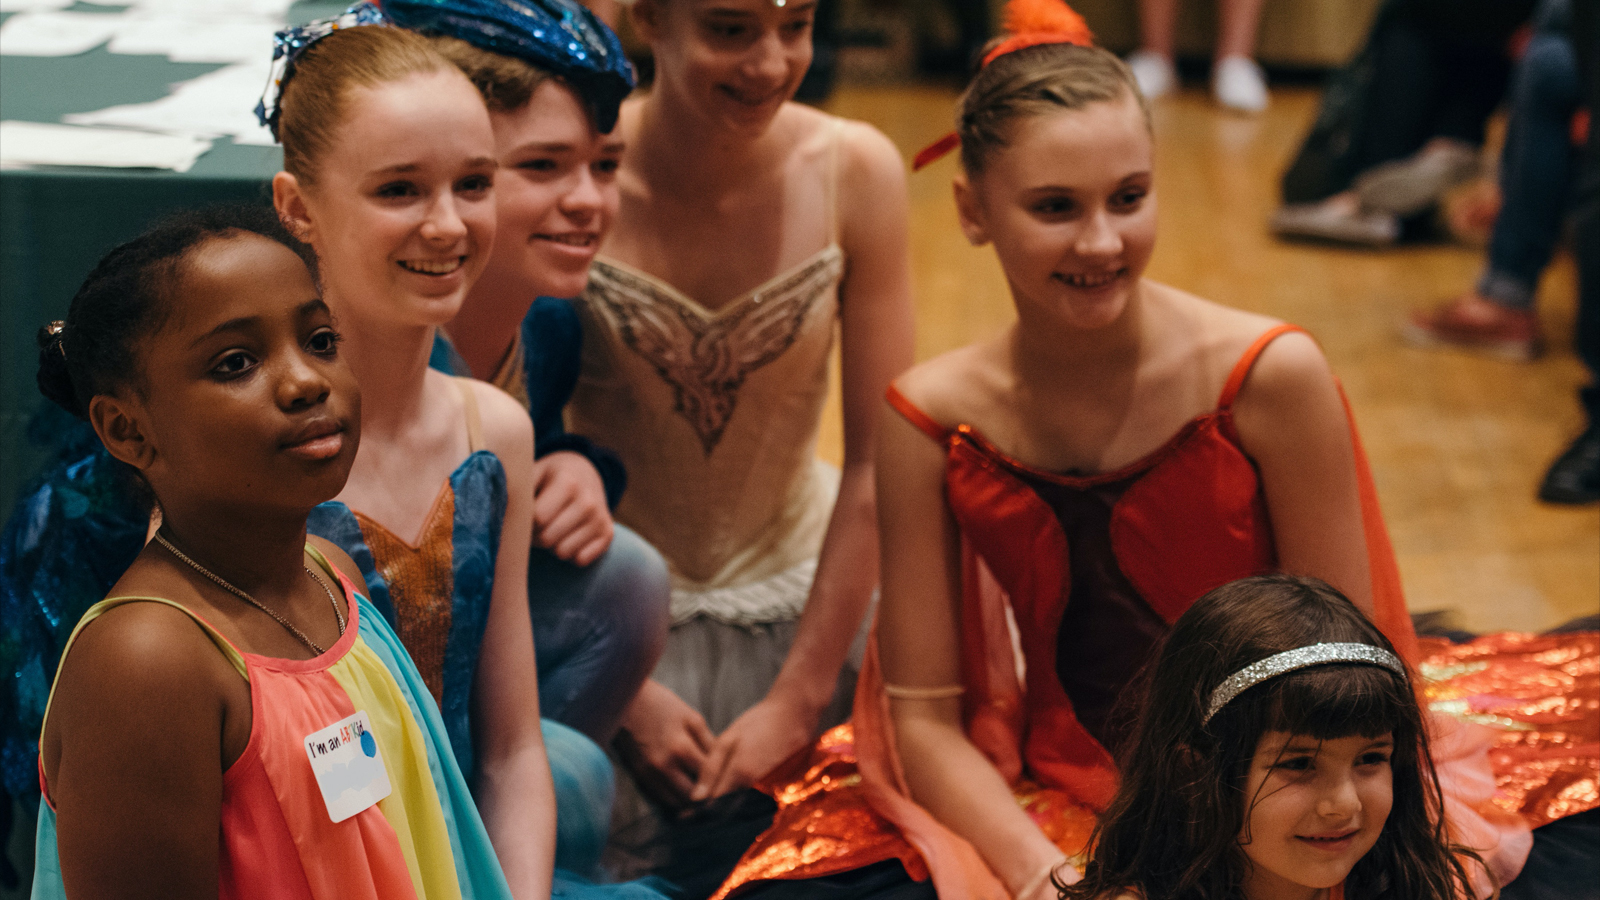 Six young dancers, four in full ballet costume, sit closely together and smile off-camera.